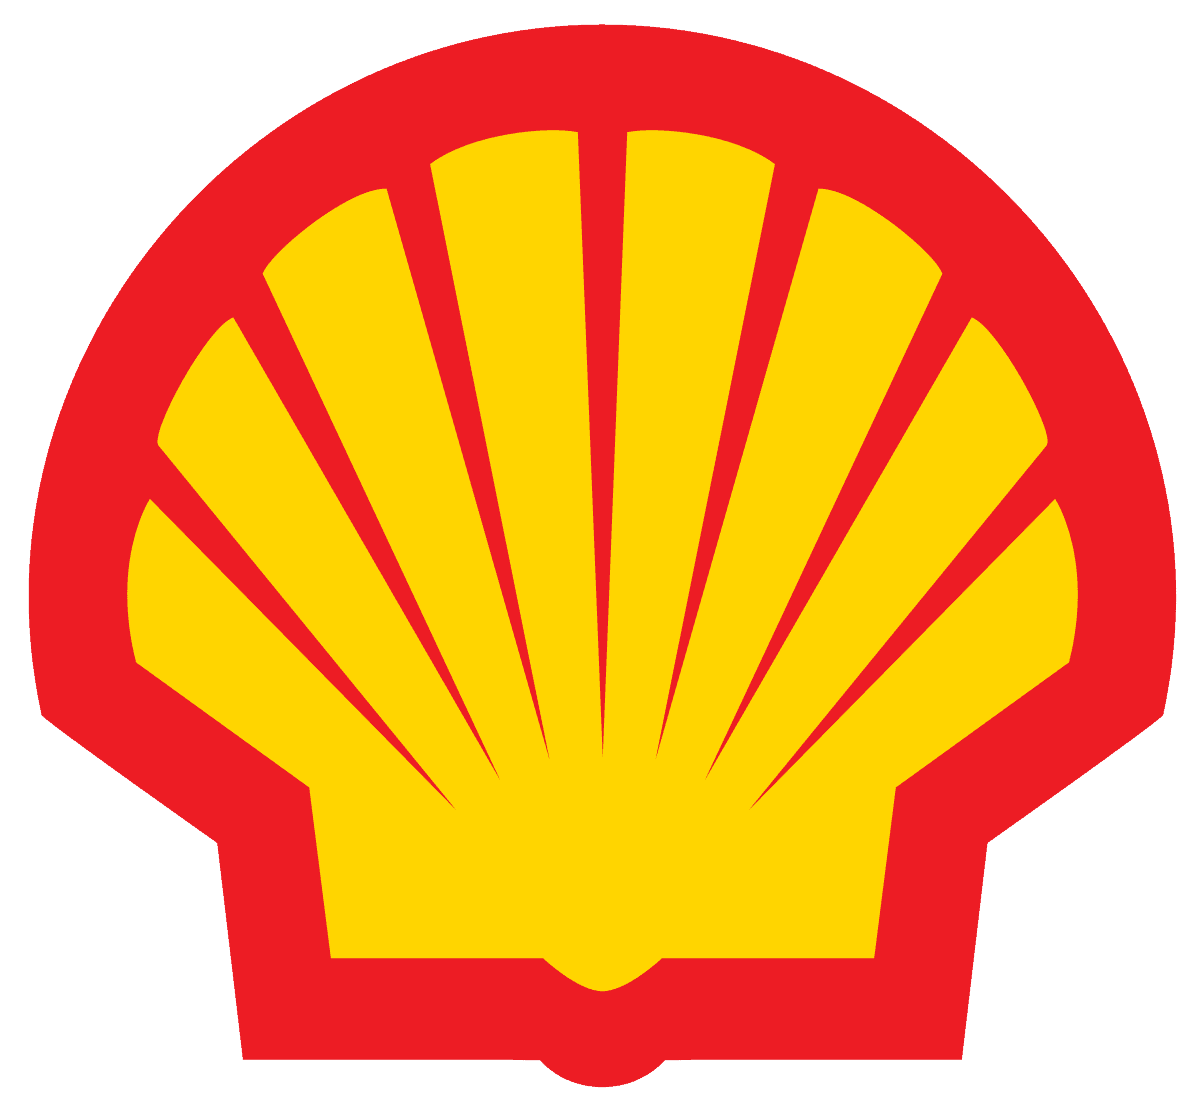 Buy Shell Shares